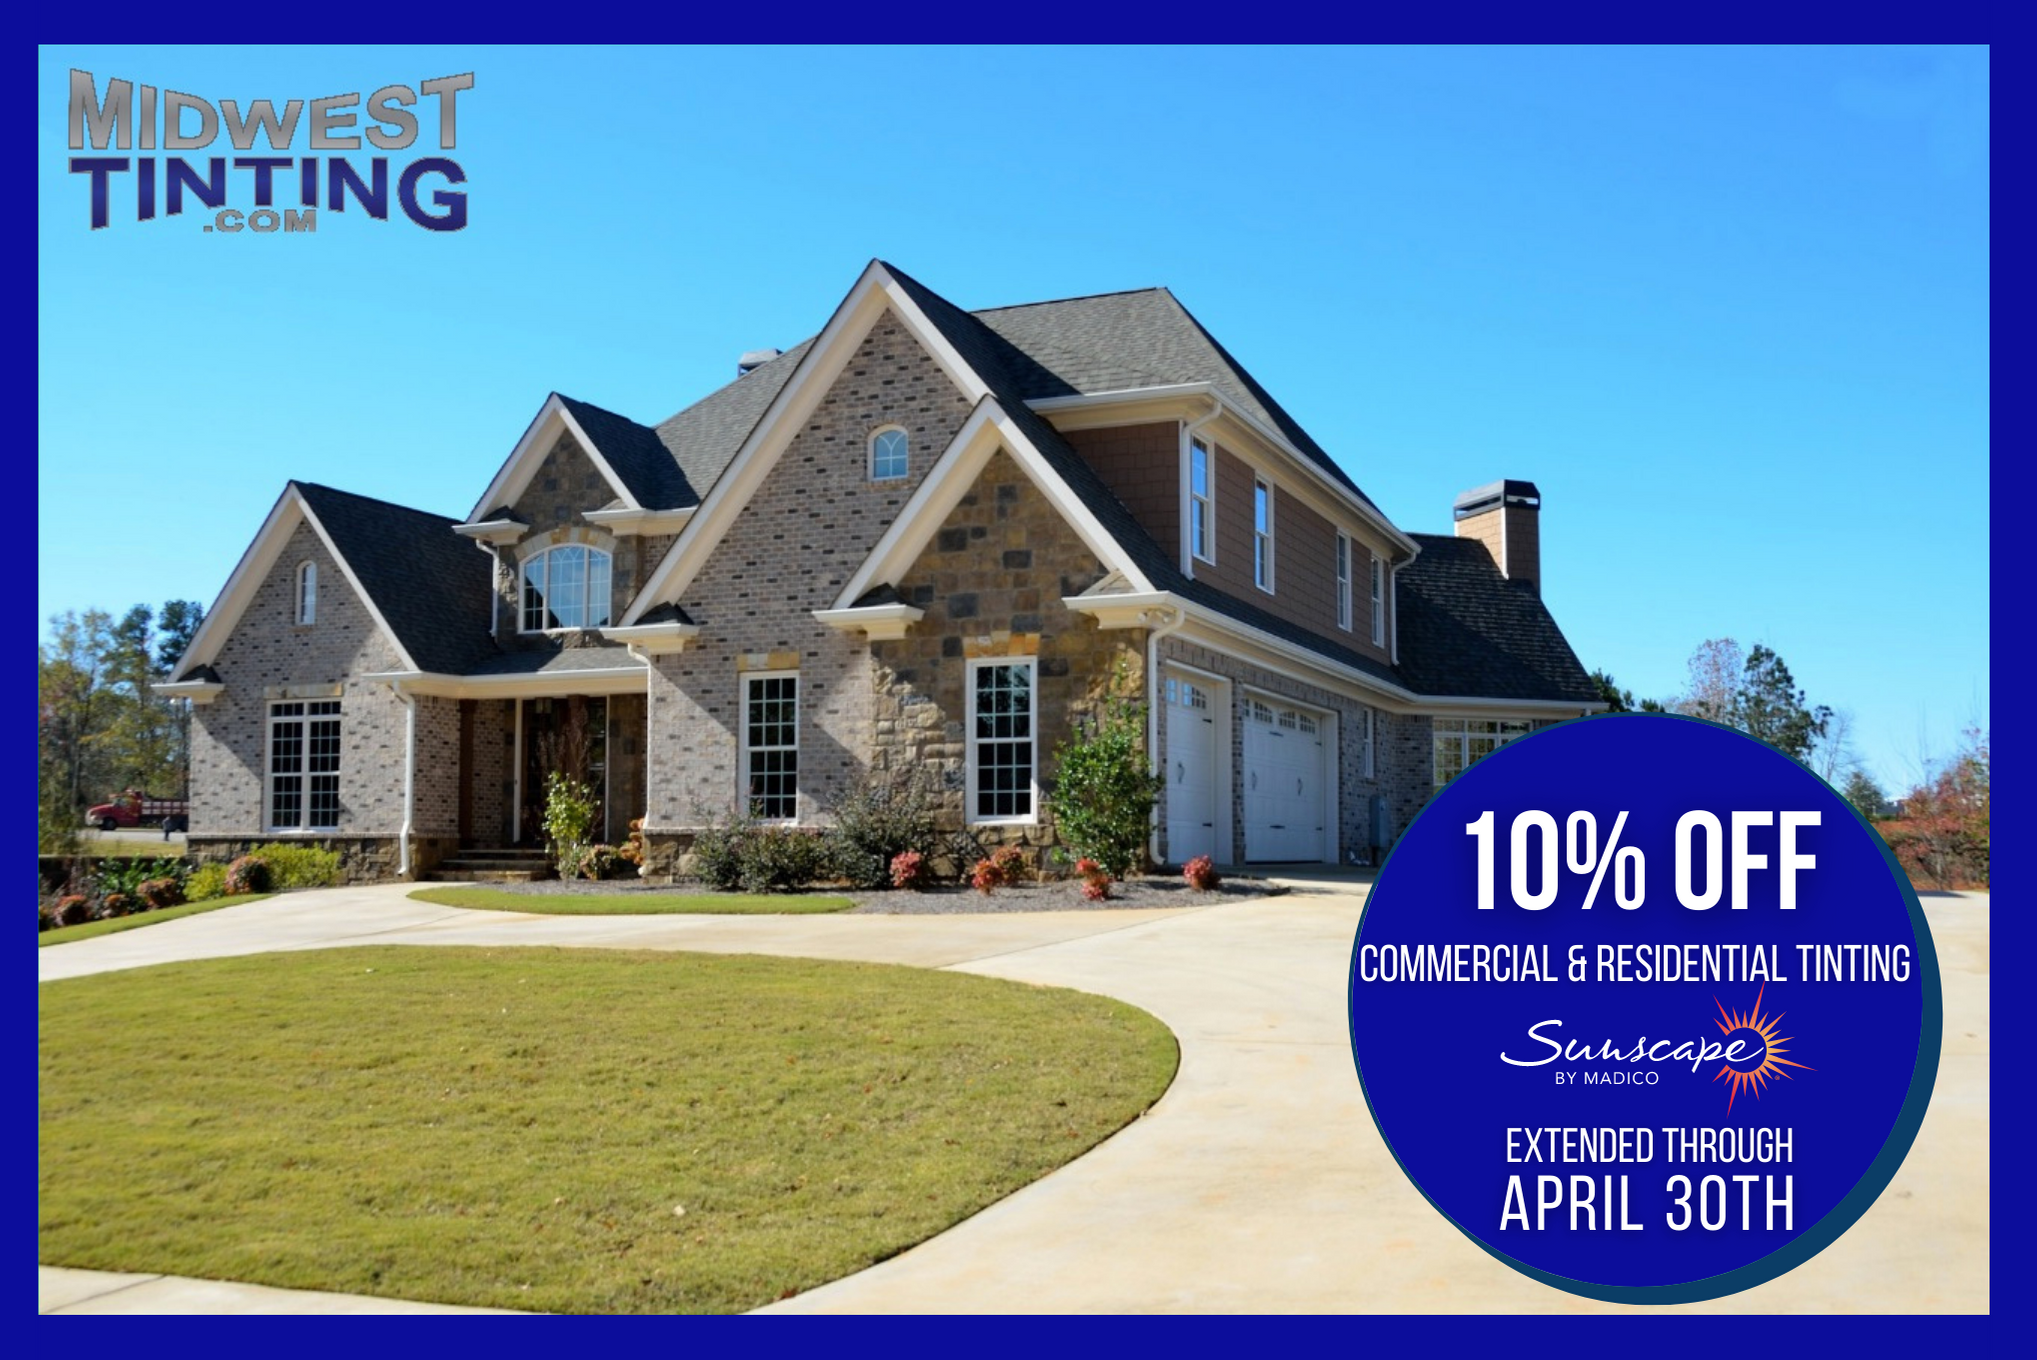 Spring Into The Season With 10% OFF Commercial & Residential Window Film - Home and Commercial Window Tint in Kansas City